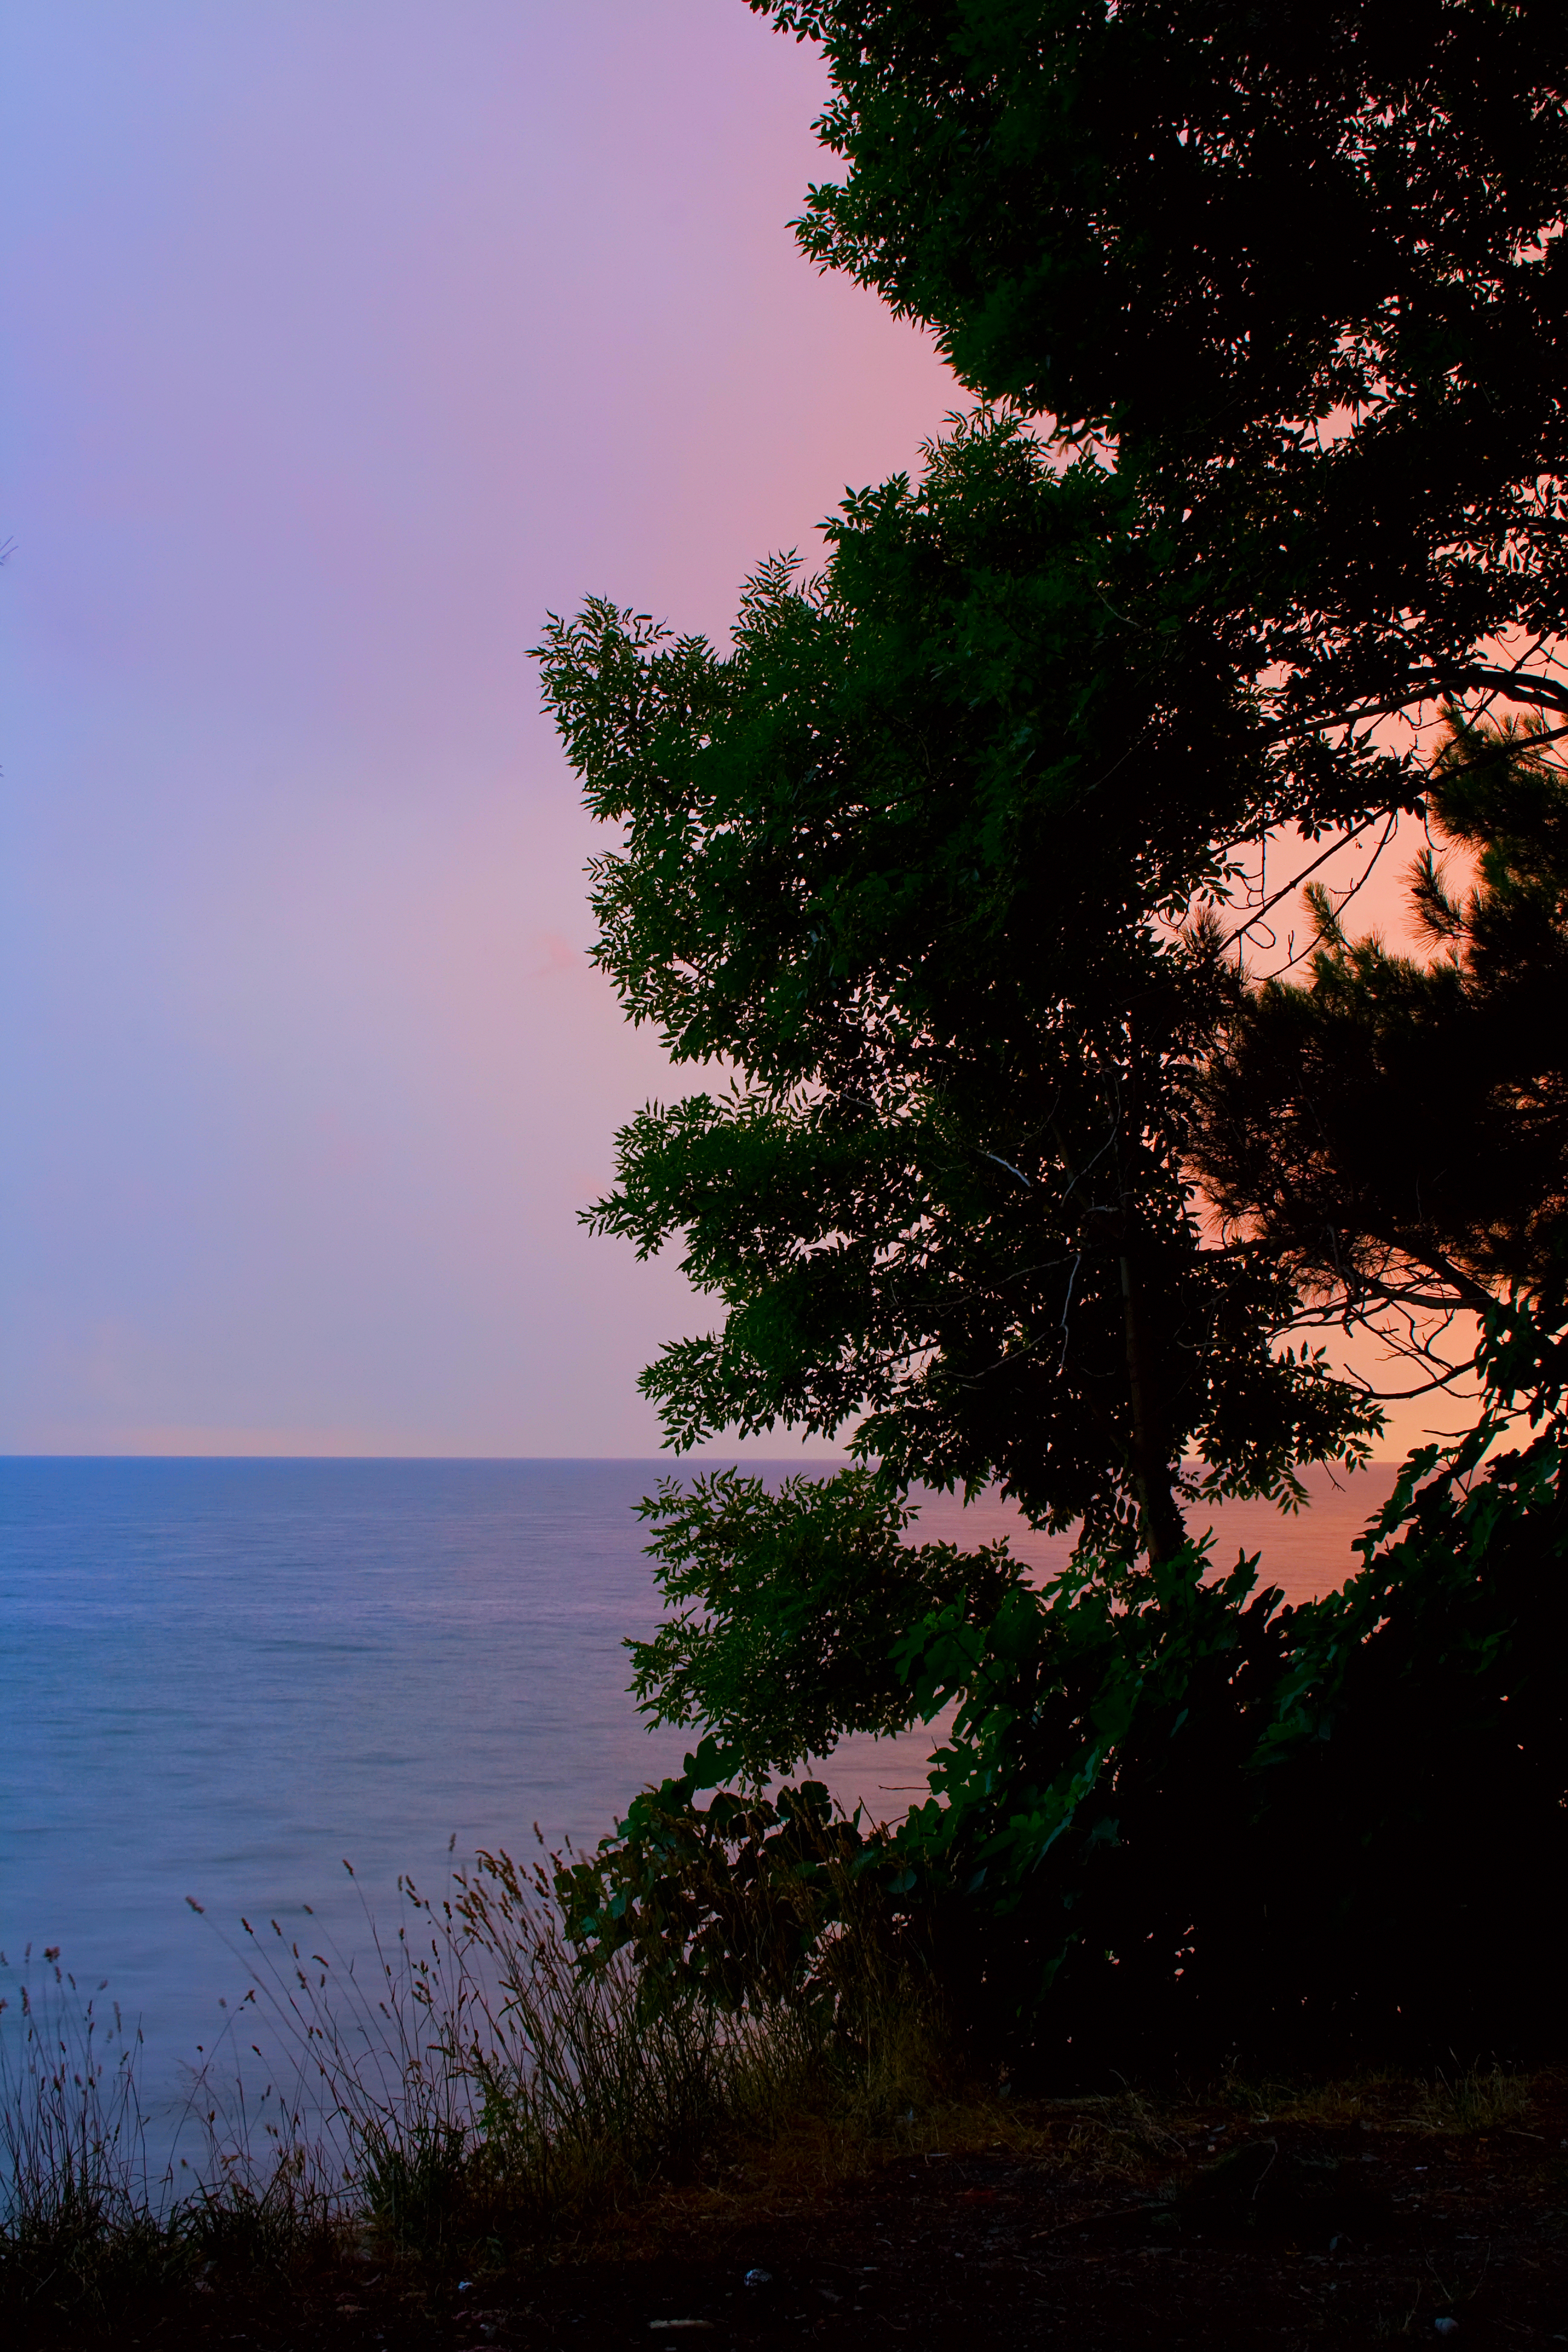 136512 download wallpaper Horizon, Landscape, Nature, Water, Trees, Shore, Bank screensavers and pictures for free